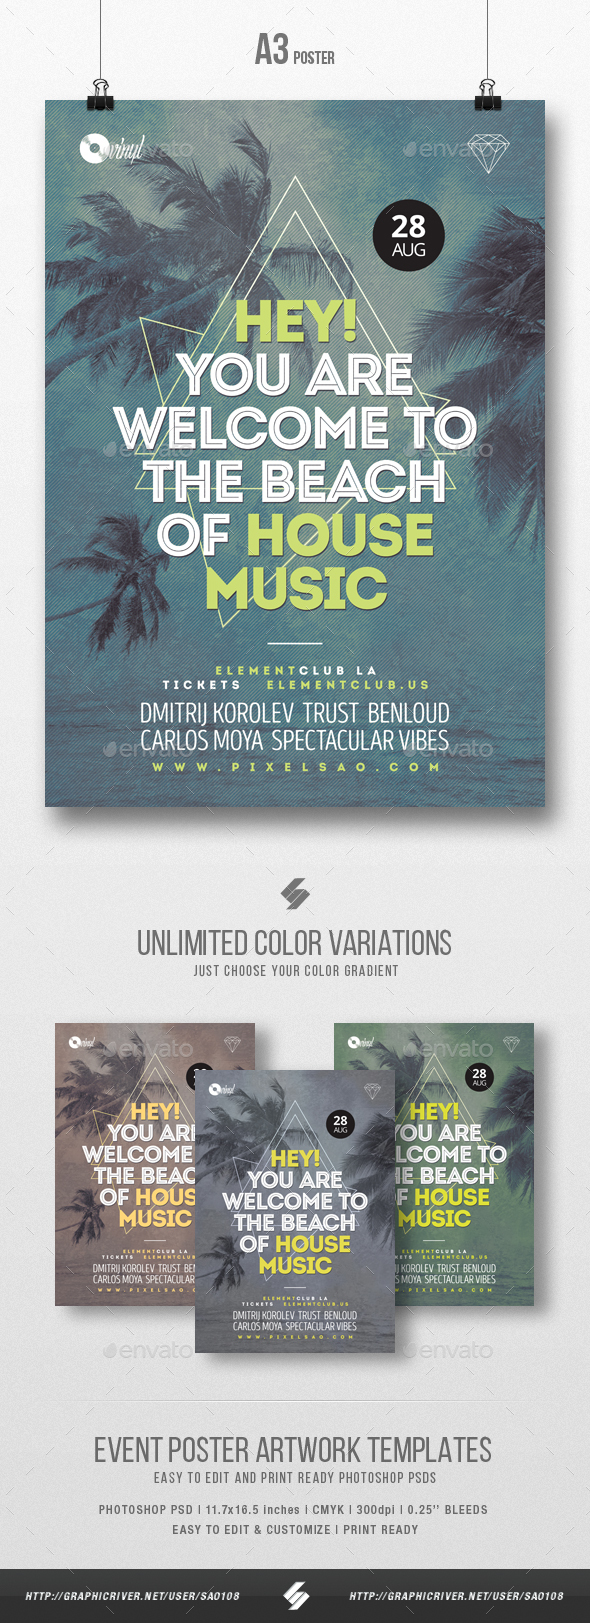 Beach of House Music - Party Flyer / Poster Template A3 - Clubs & Parties Events